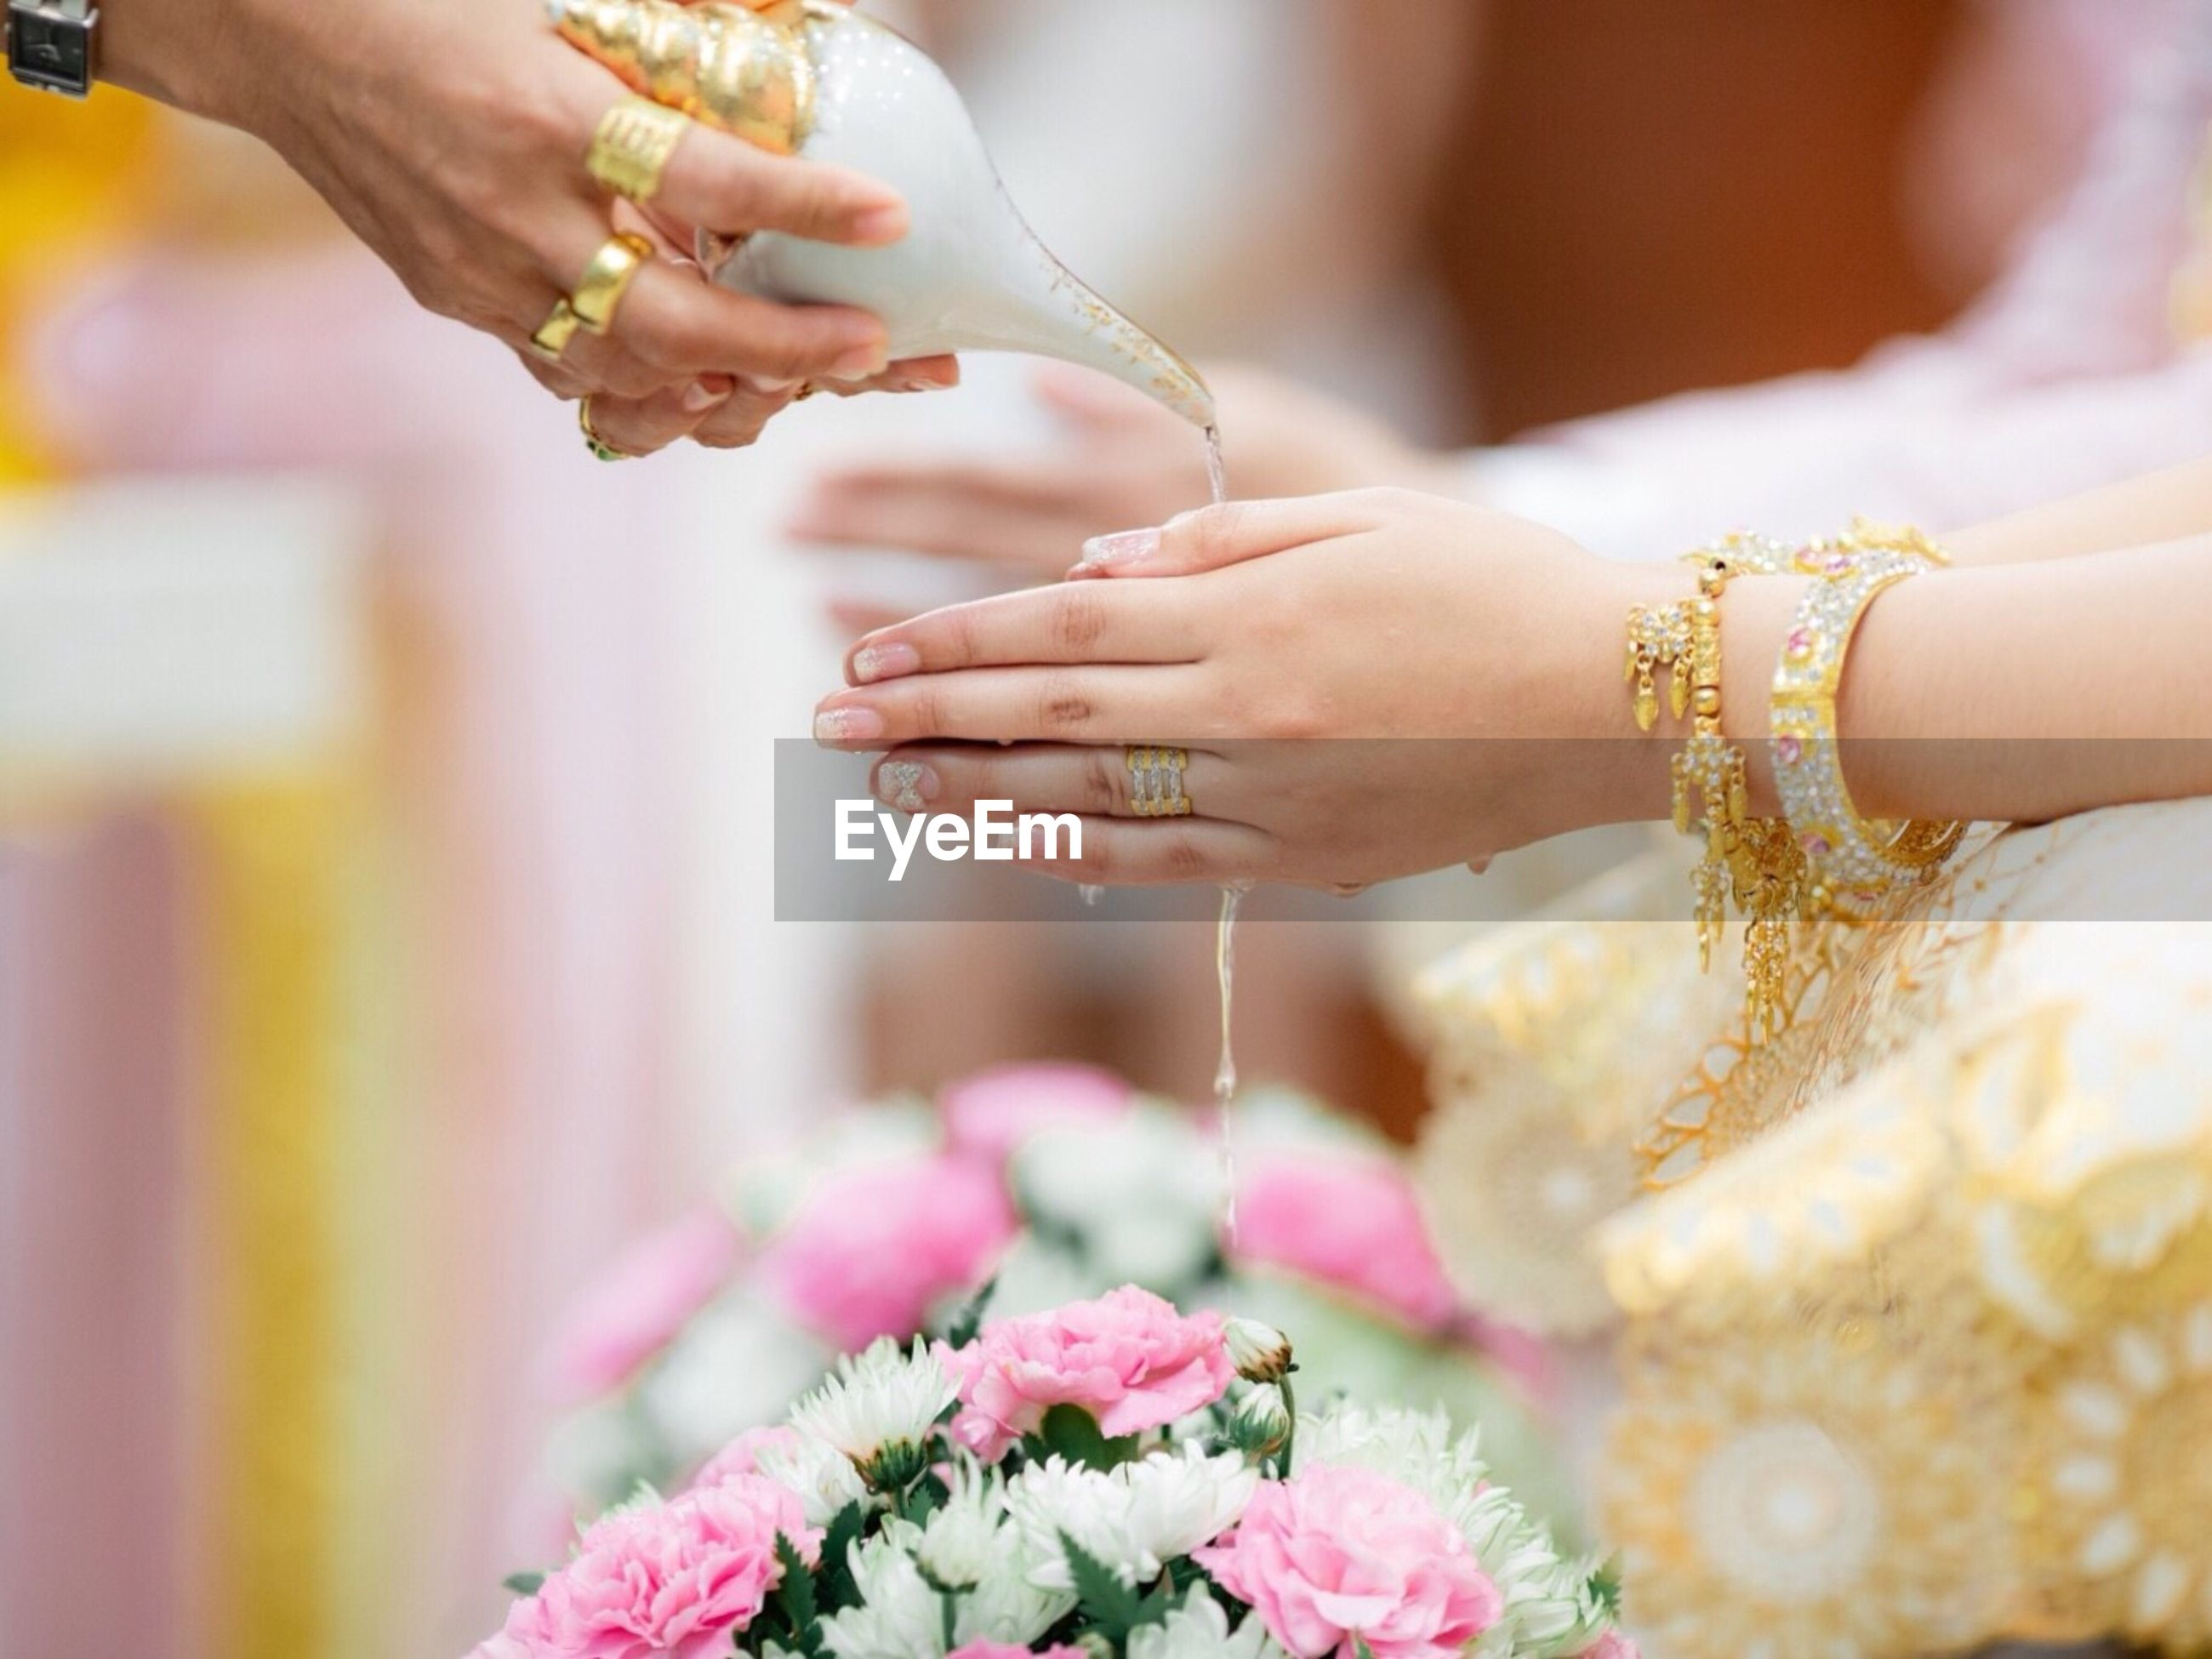 Cropped image of bride performing wedding rituals